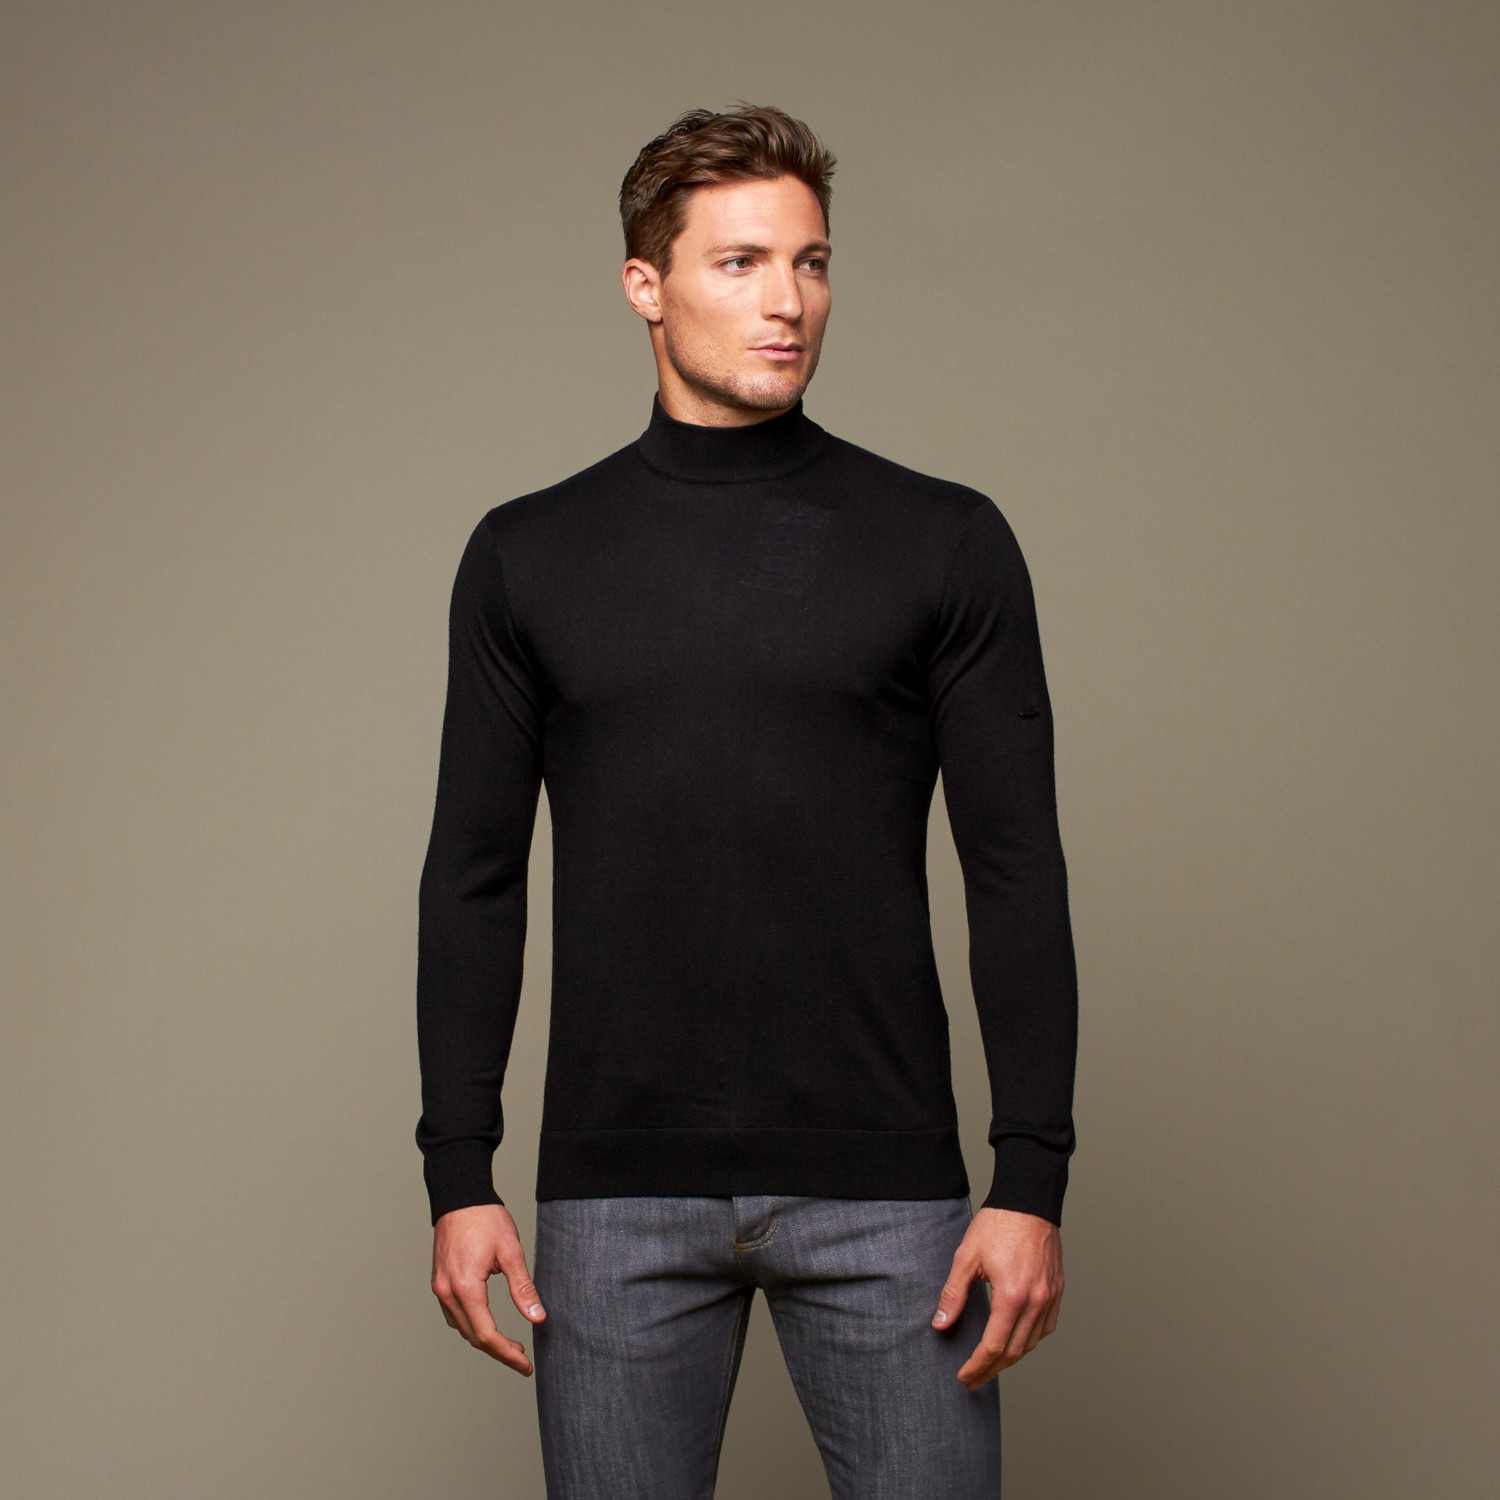 Shop for black mock turtleneck online at Target. Free shipping on purchases over $35 and save 5% every day with your Target REDcard.